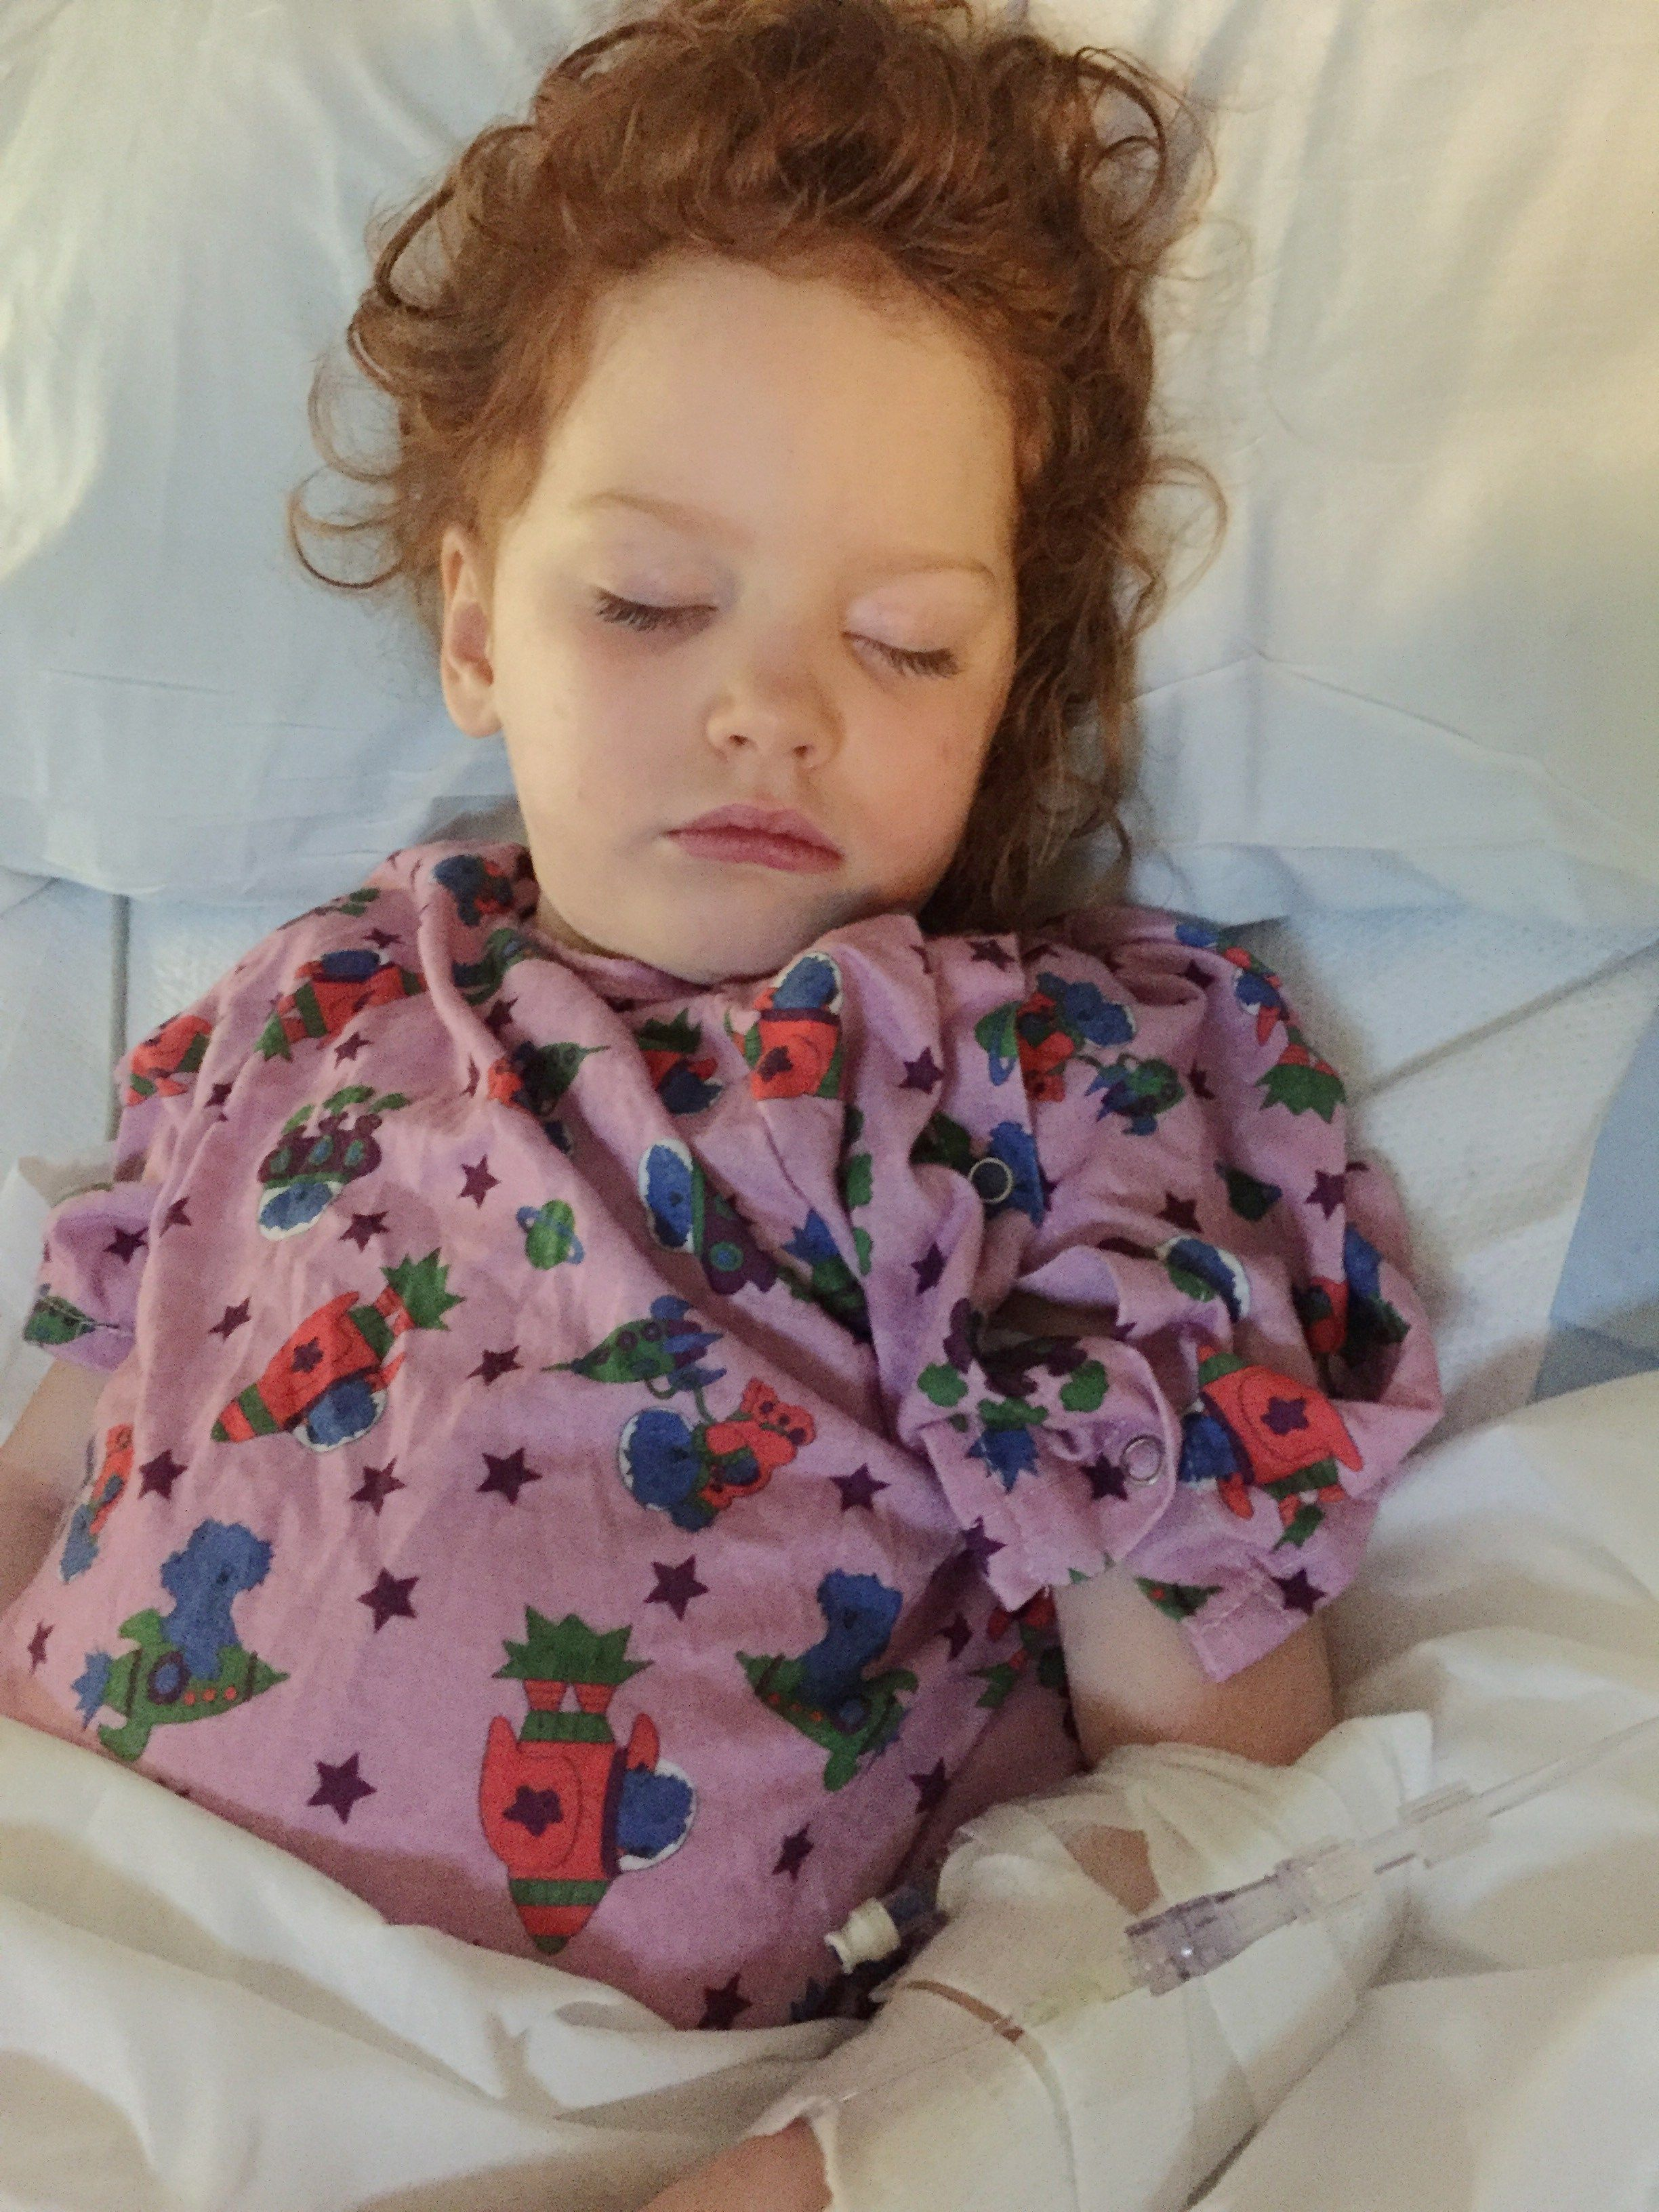 Febrile Seizures In Kids One Family S Story And What You